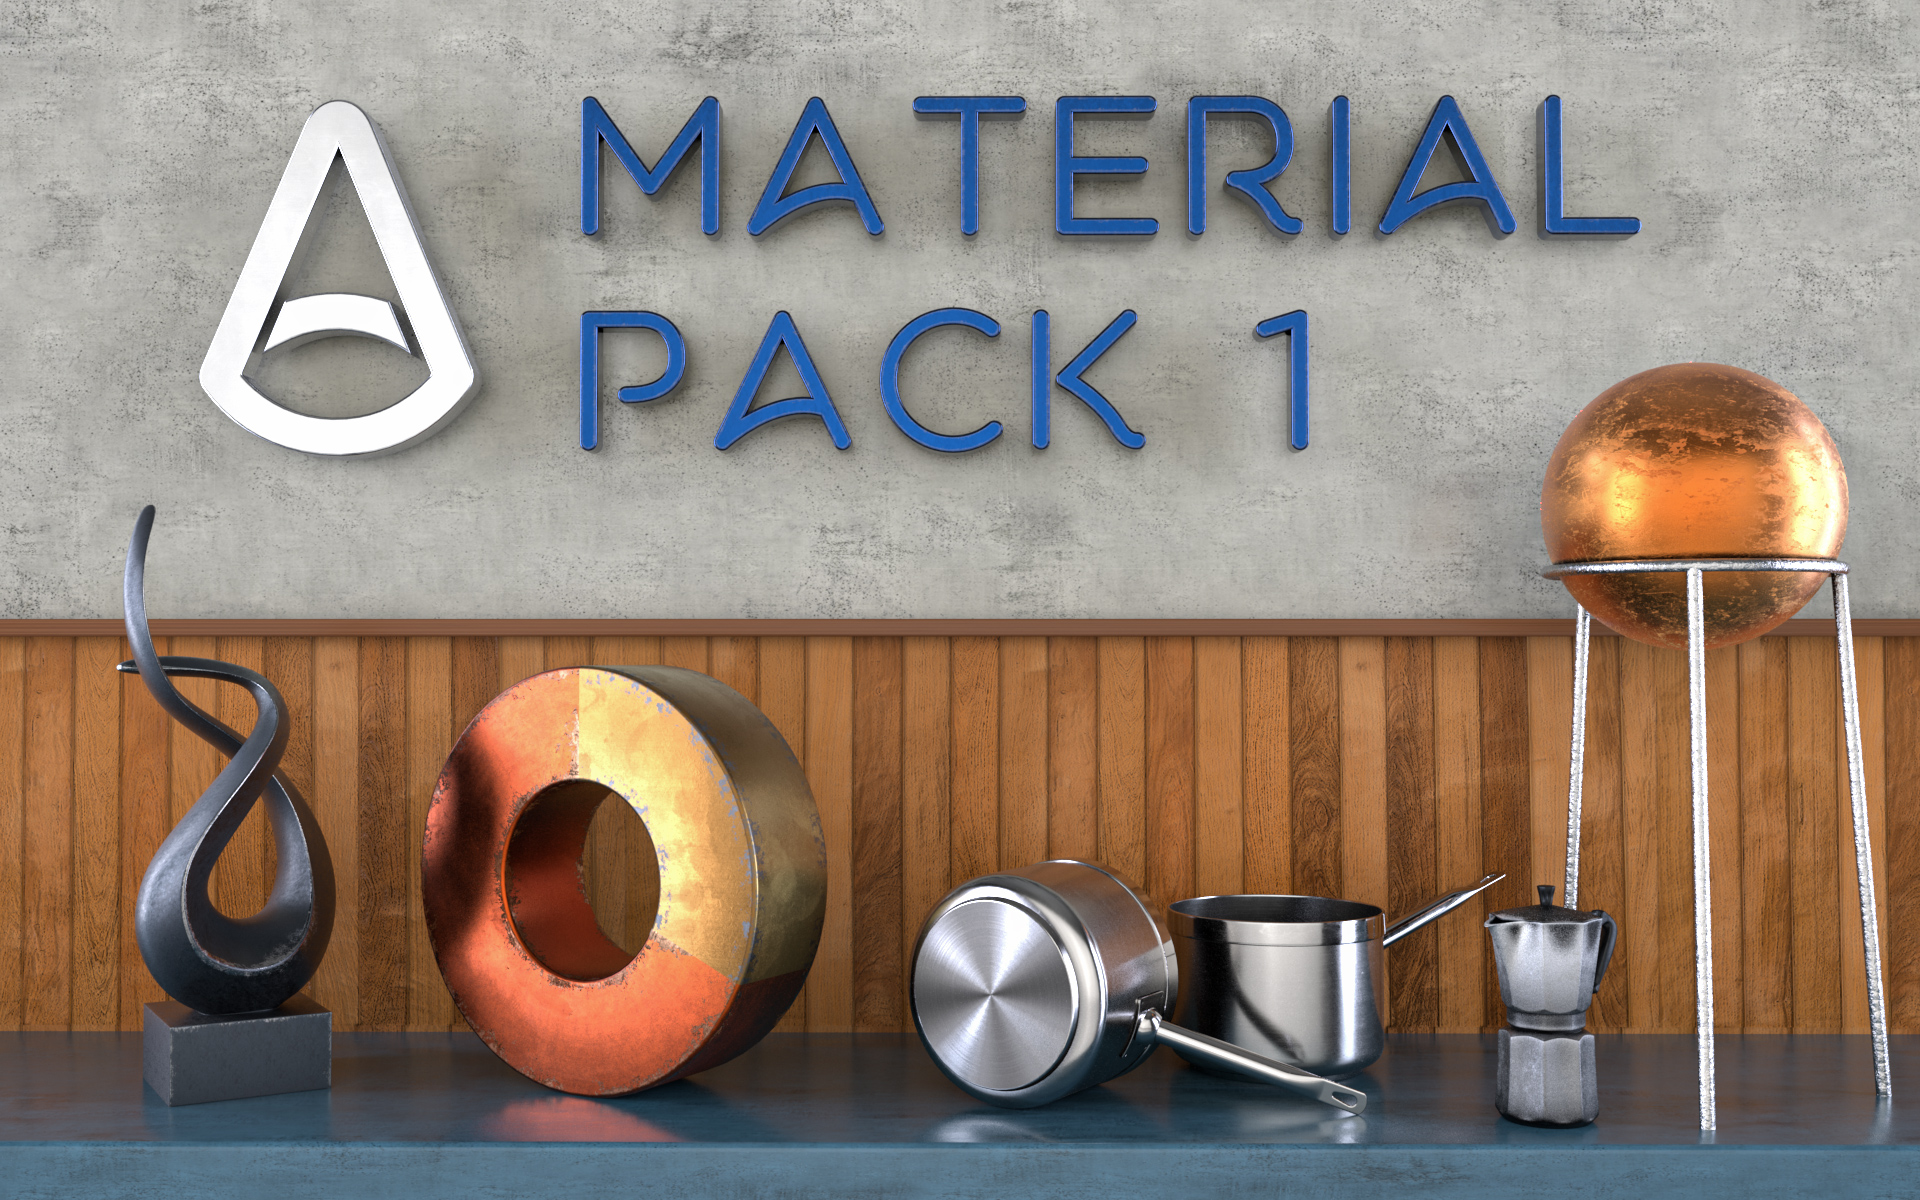 Arnold-material-library-c4d-PBR-textures-C4DToA-MATERIAL-PACK-1.jpg